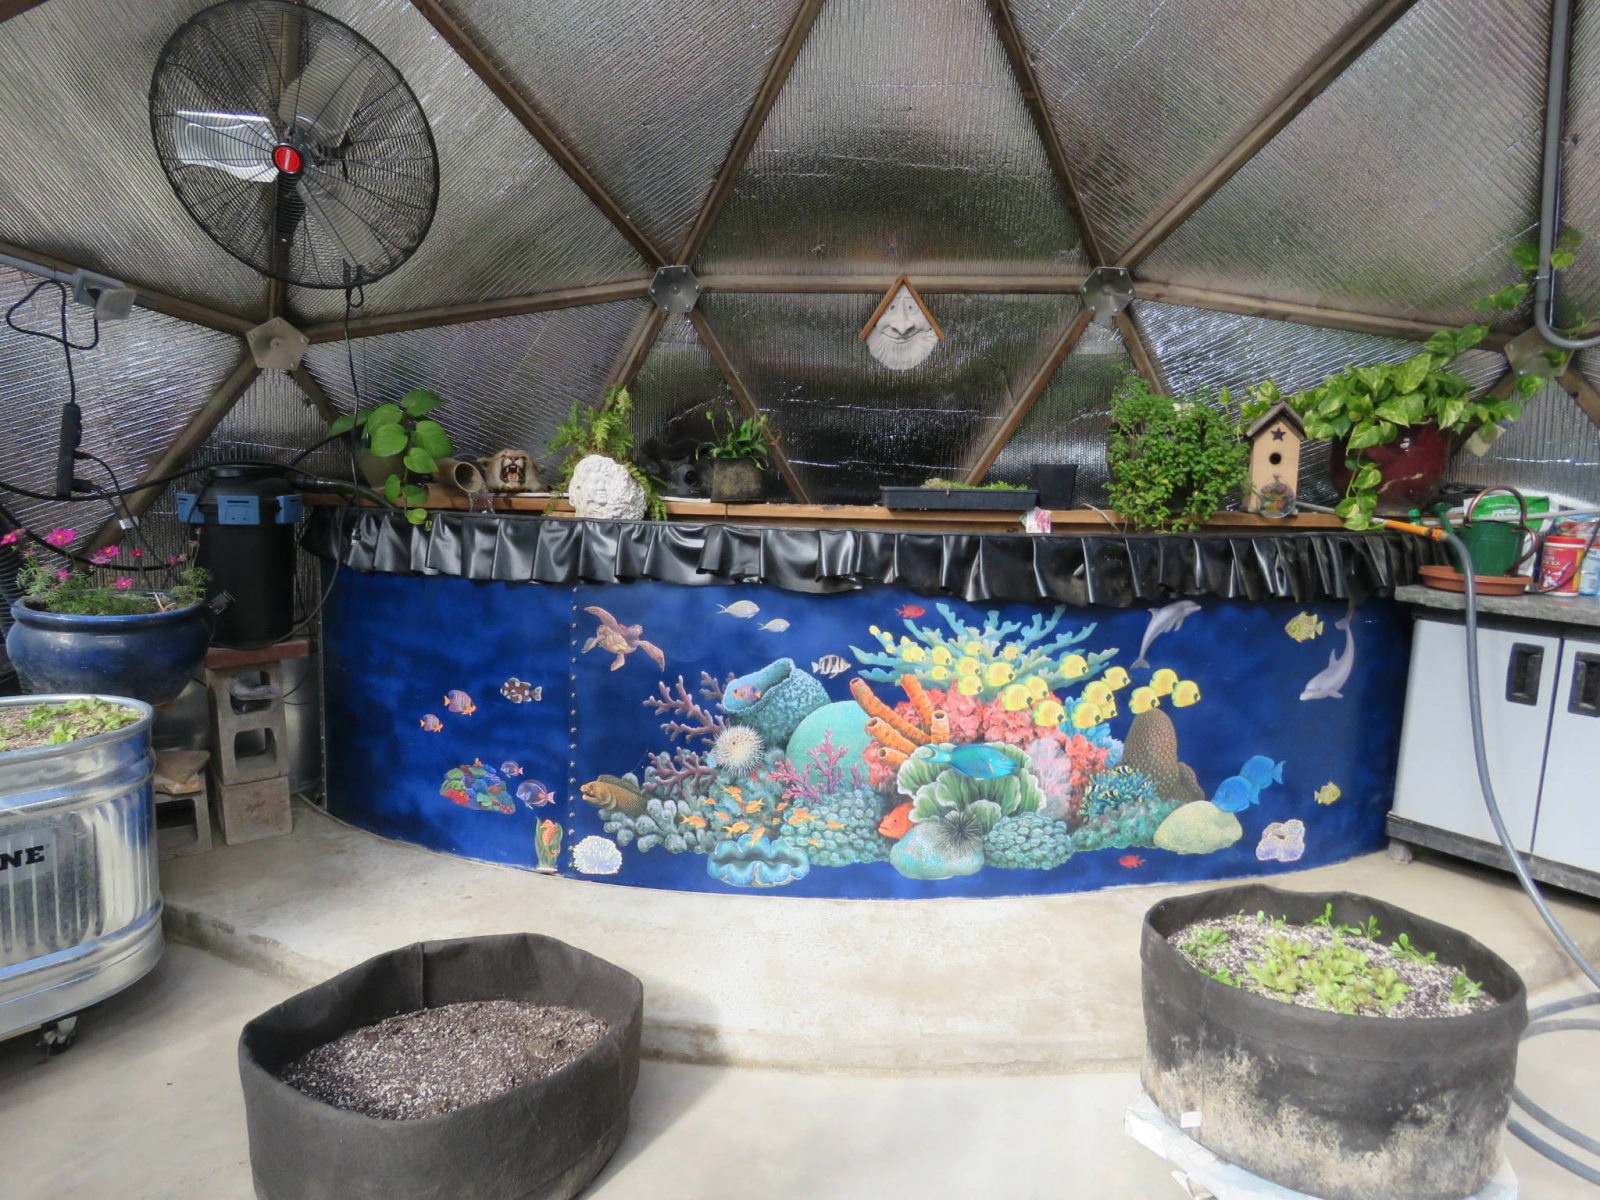 Water Tank Art in Growing Dome Greenhouse